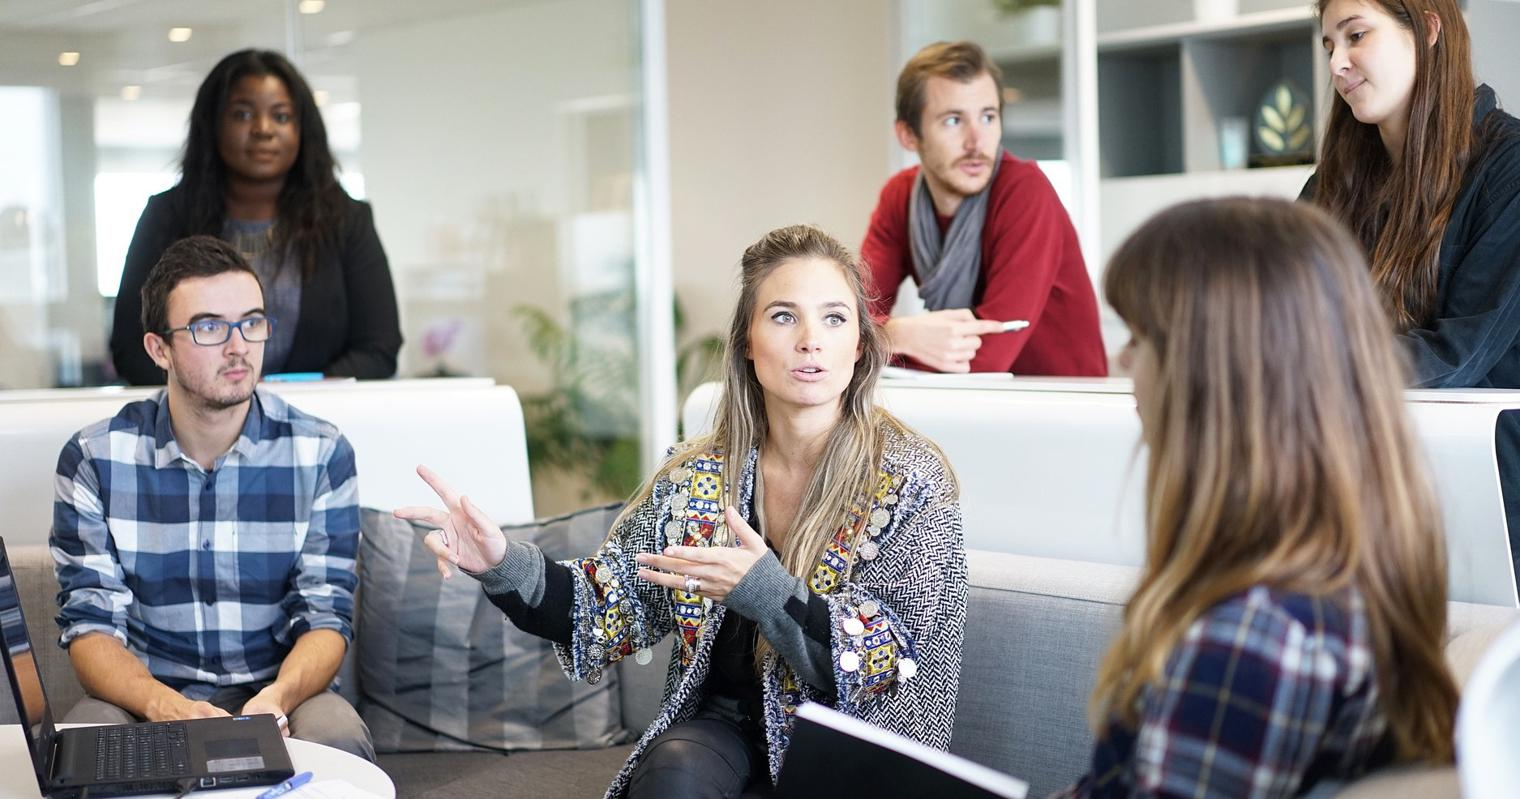 Millennials vs. Gen Z: Key Similarities and Differences in the Workplace